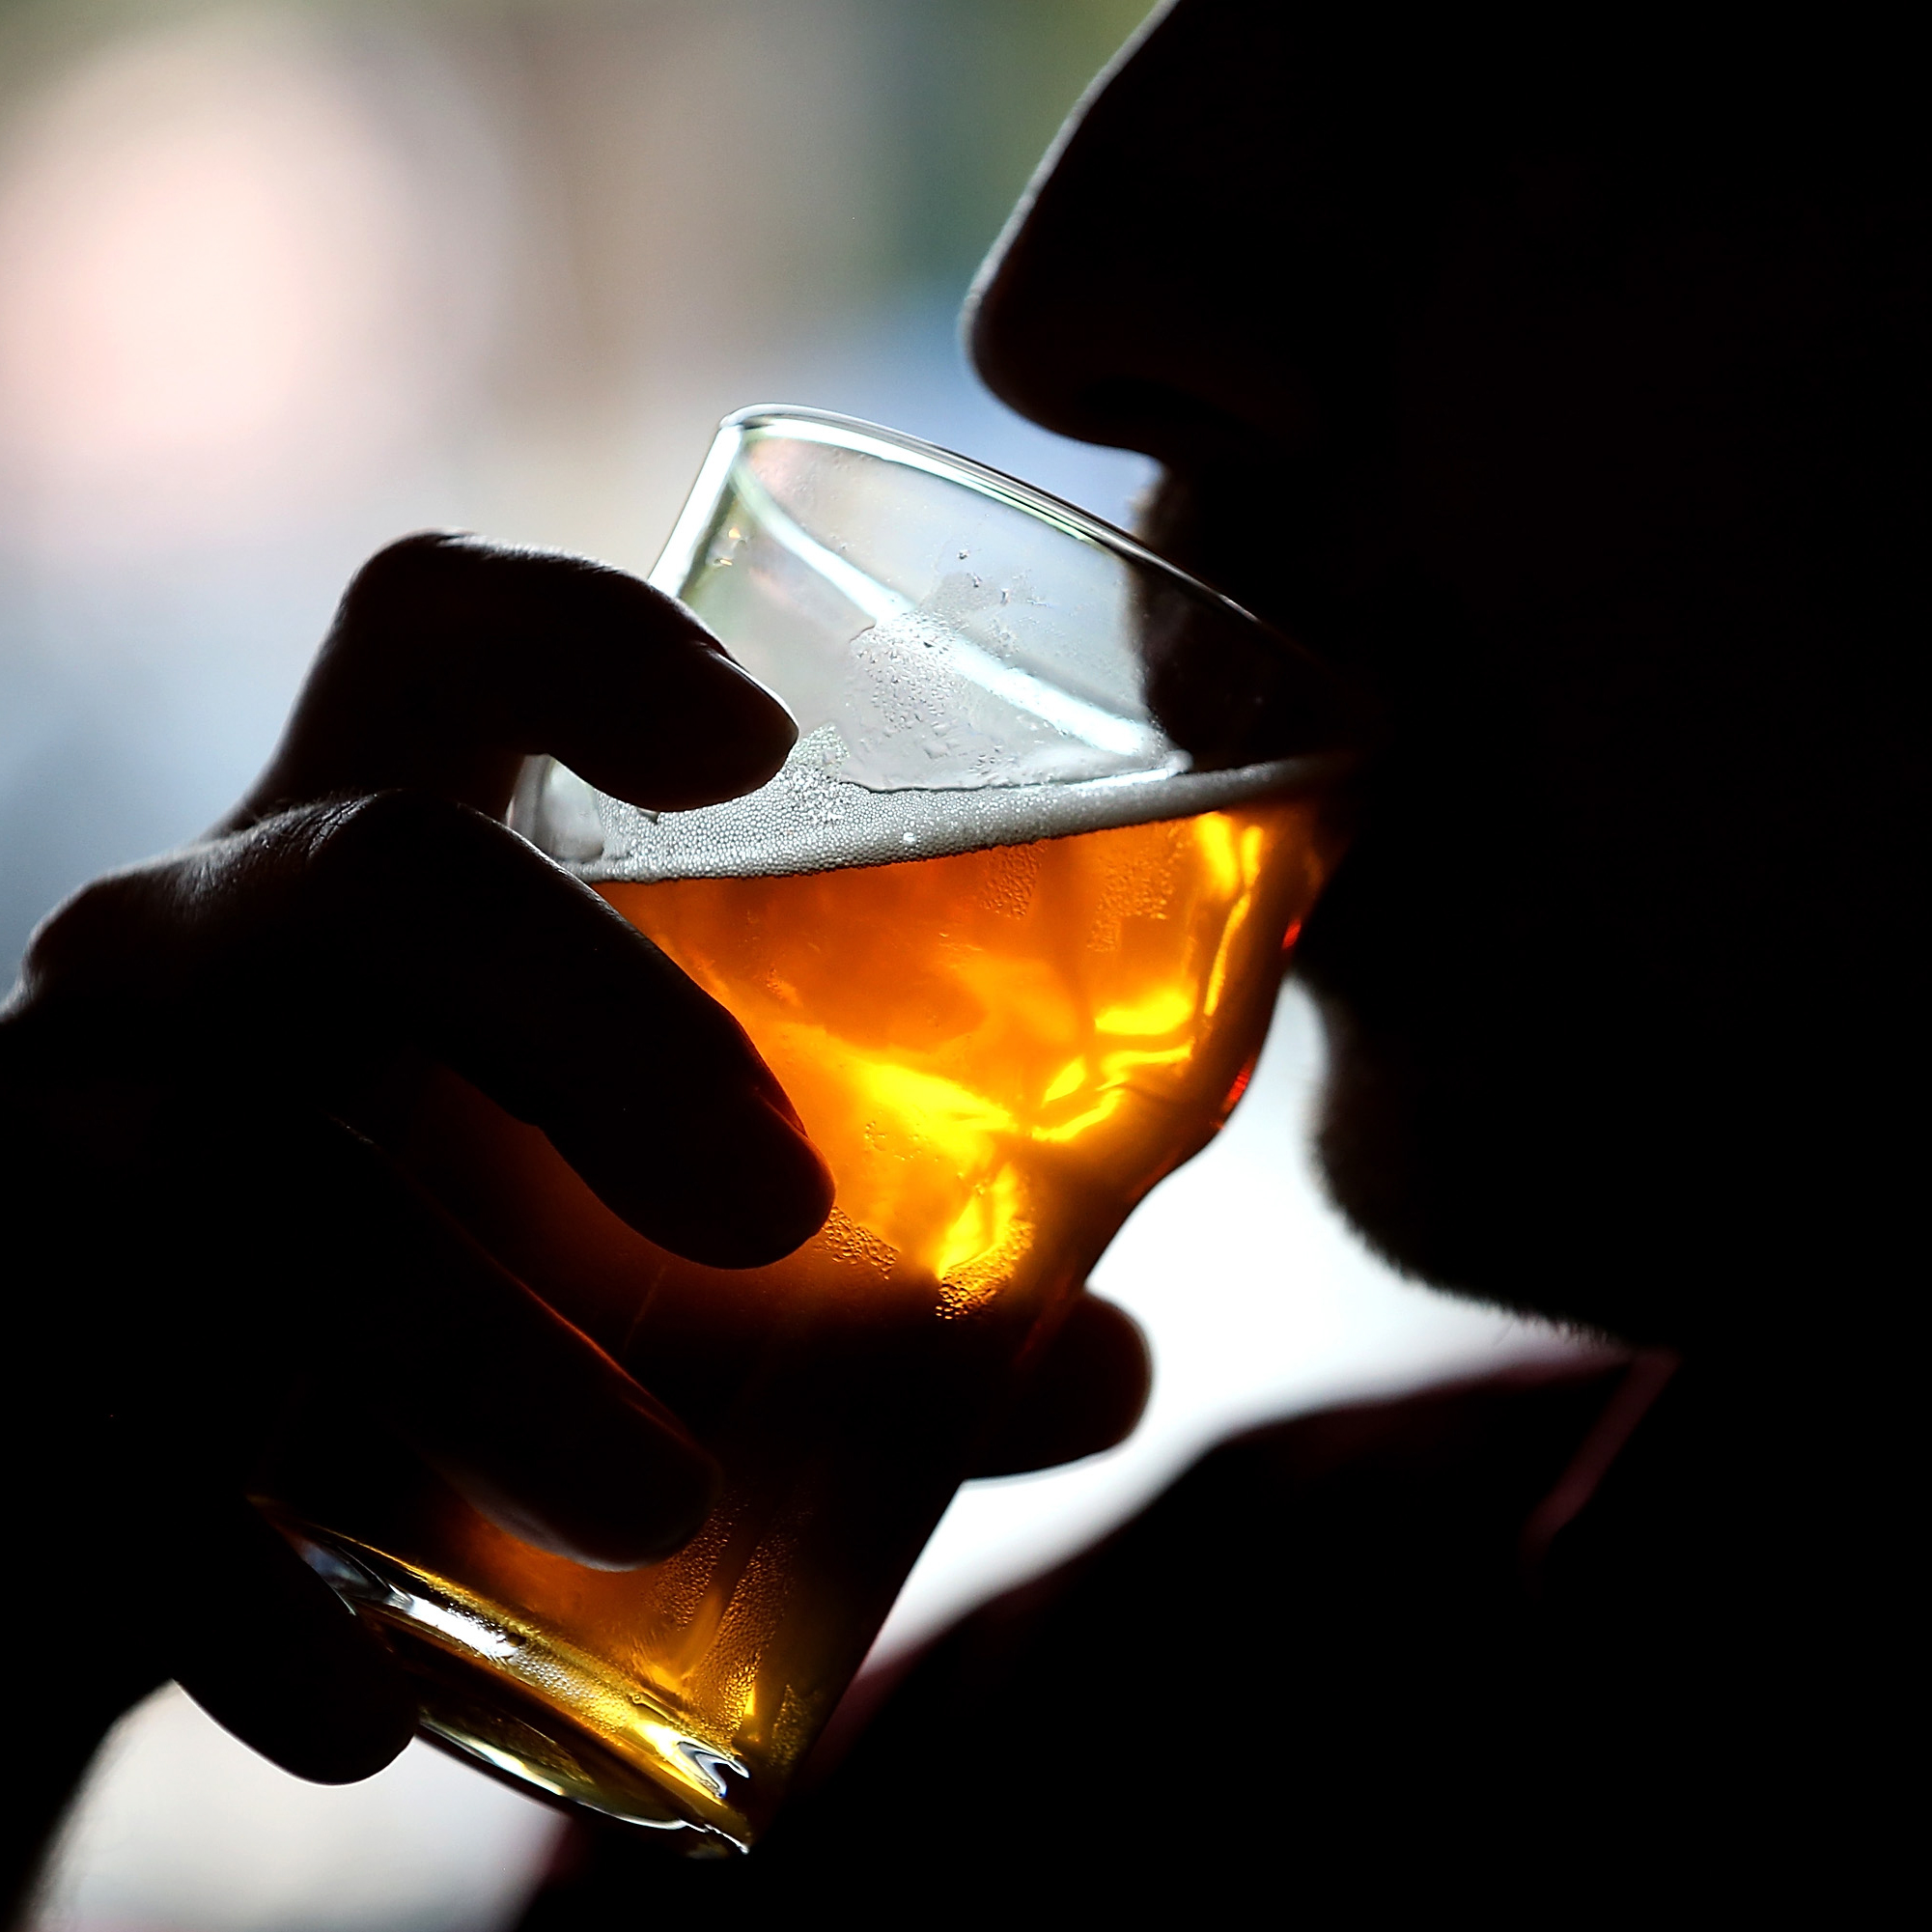 drinking-beer-shadows-fwx